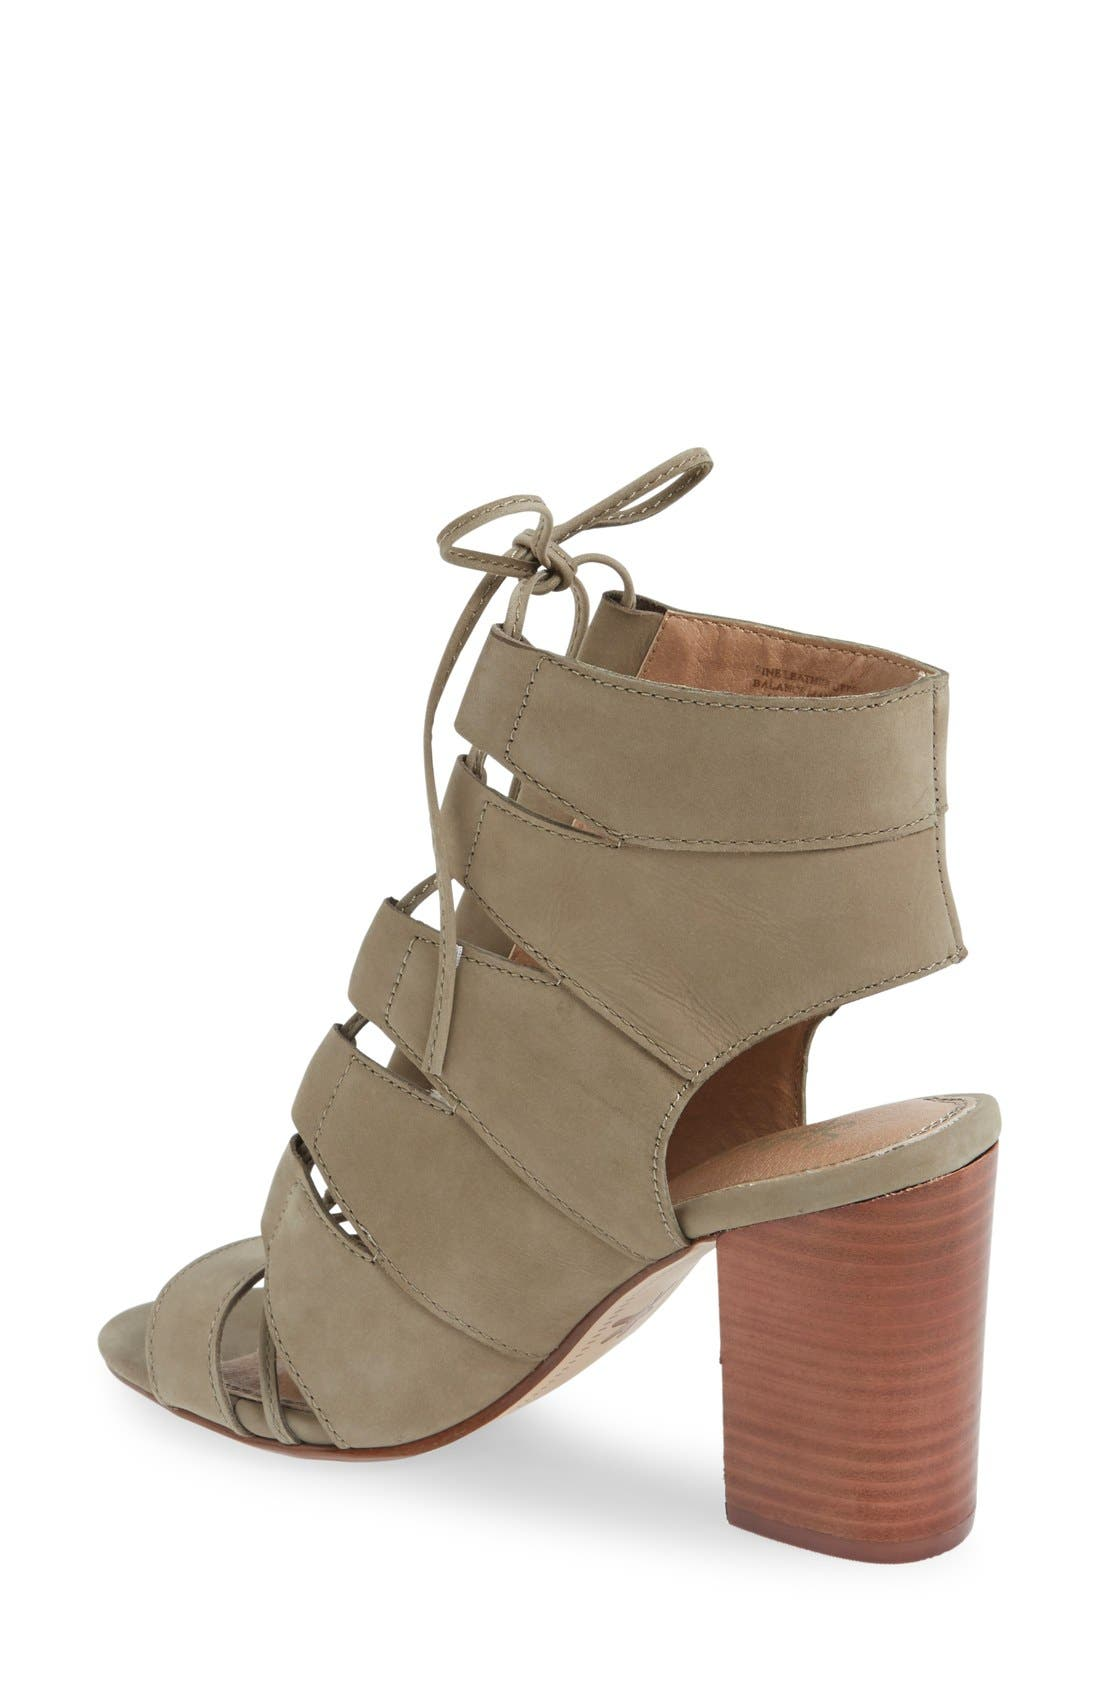 Alternate Image 2  - Splendid 'Banden' Lace-up Sandal (Women)